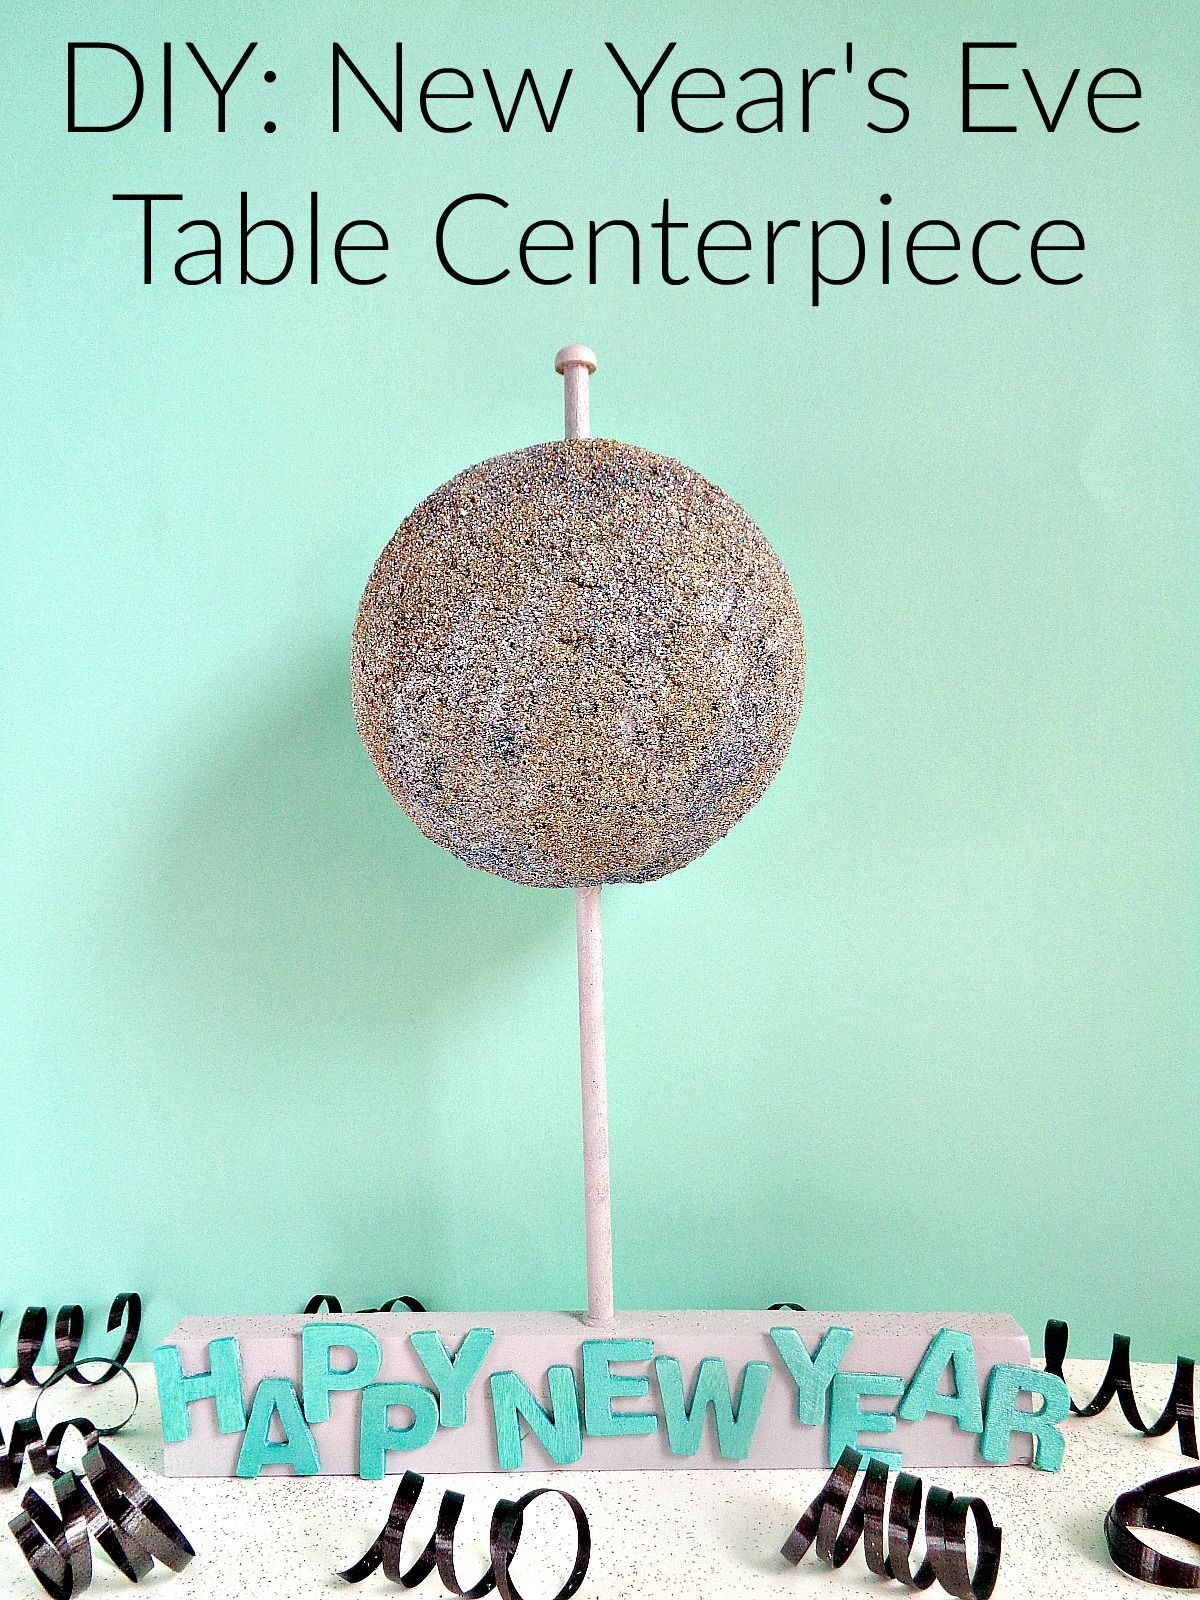 New Year's Eve Table Centerpiece